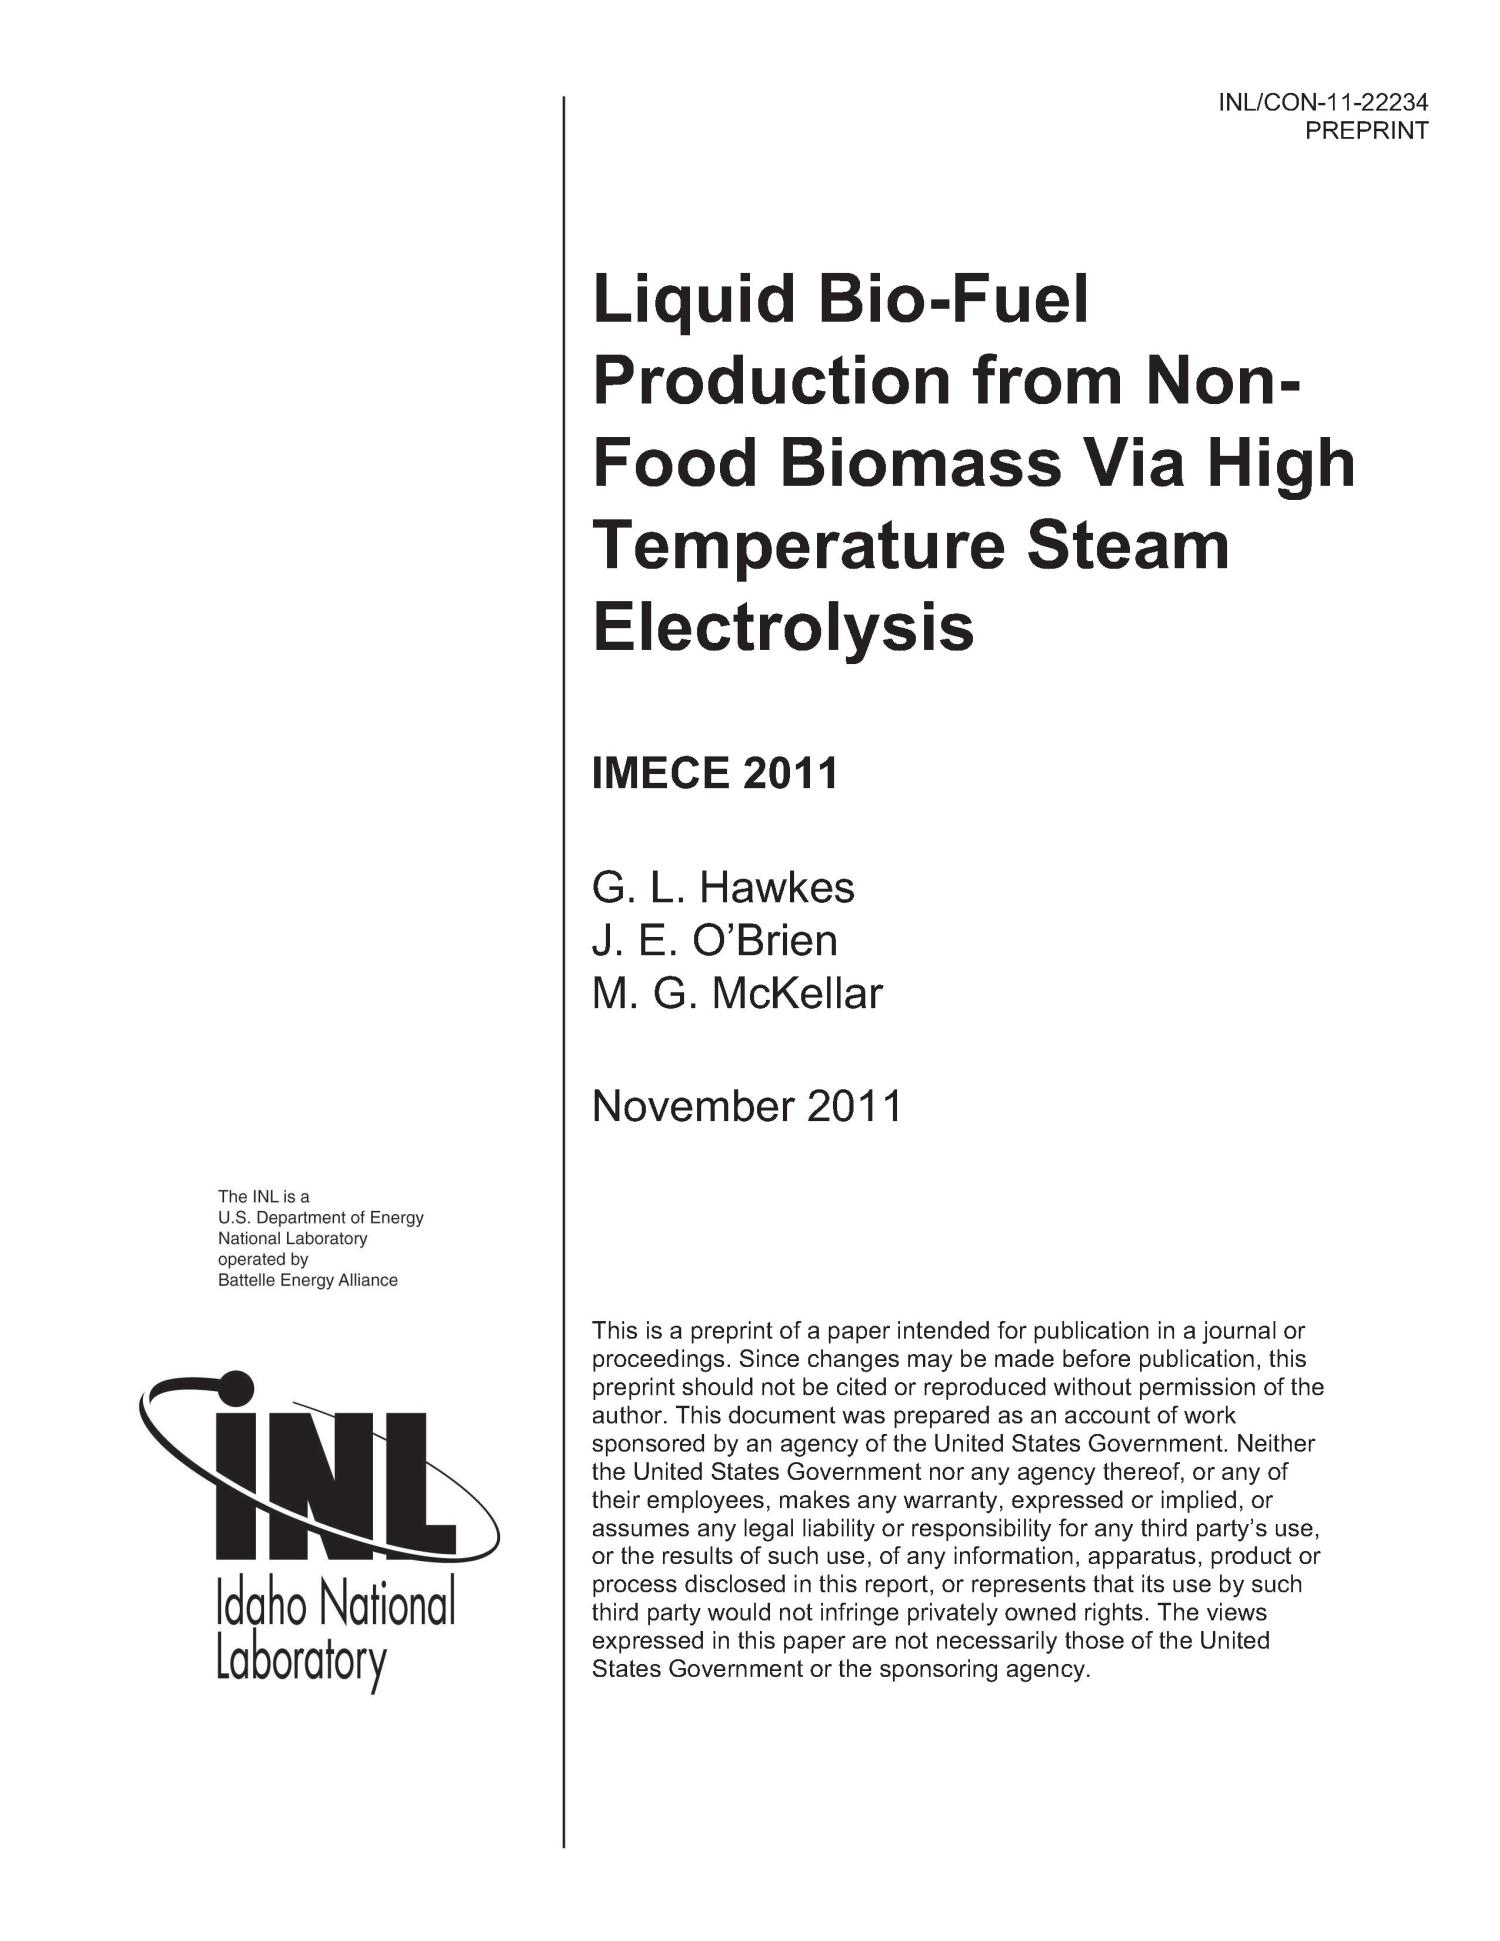 LIQUID BIO-FUEL PRODUCTION FROM NON-FOOD BIOMASS VIA HIGH TEMPERATURE STEAM ELECTROLYSIS                                                                                                      [Sequence #]: 1 of 11